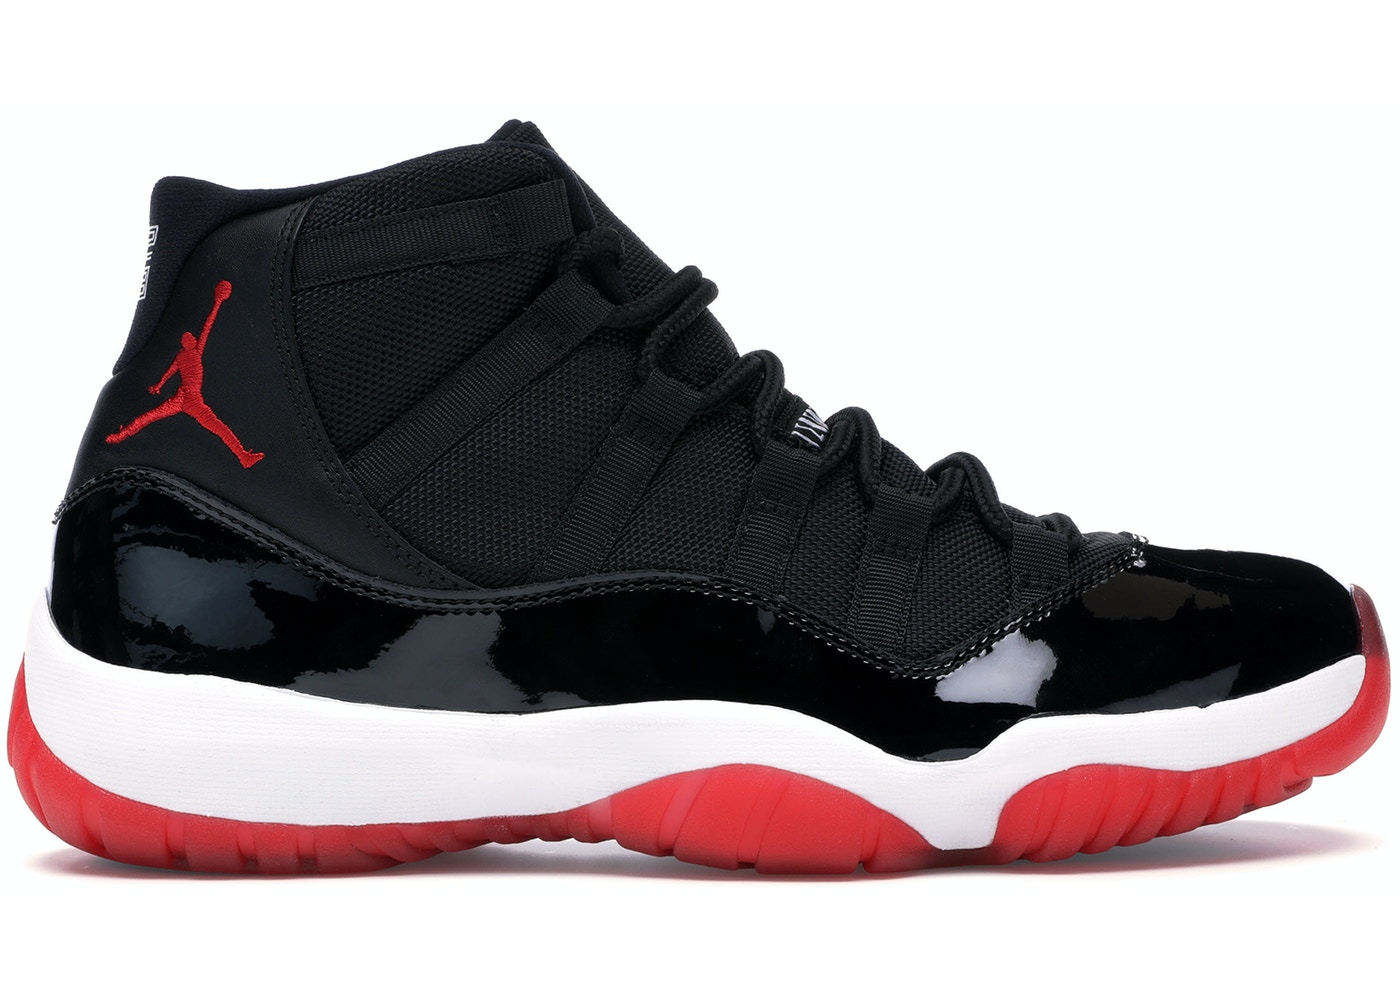 5265f7a461c Buy Air Jordan 11 Shoes & Deadstock Sneakers